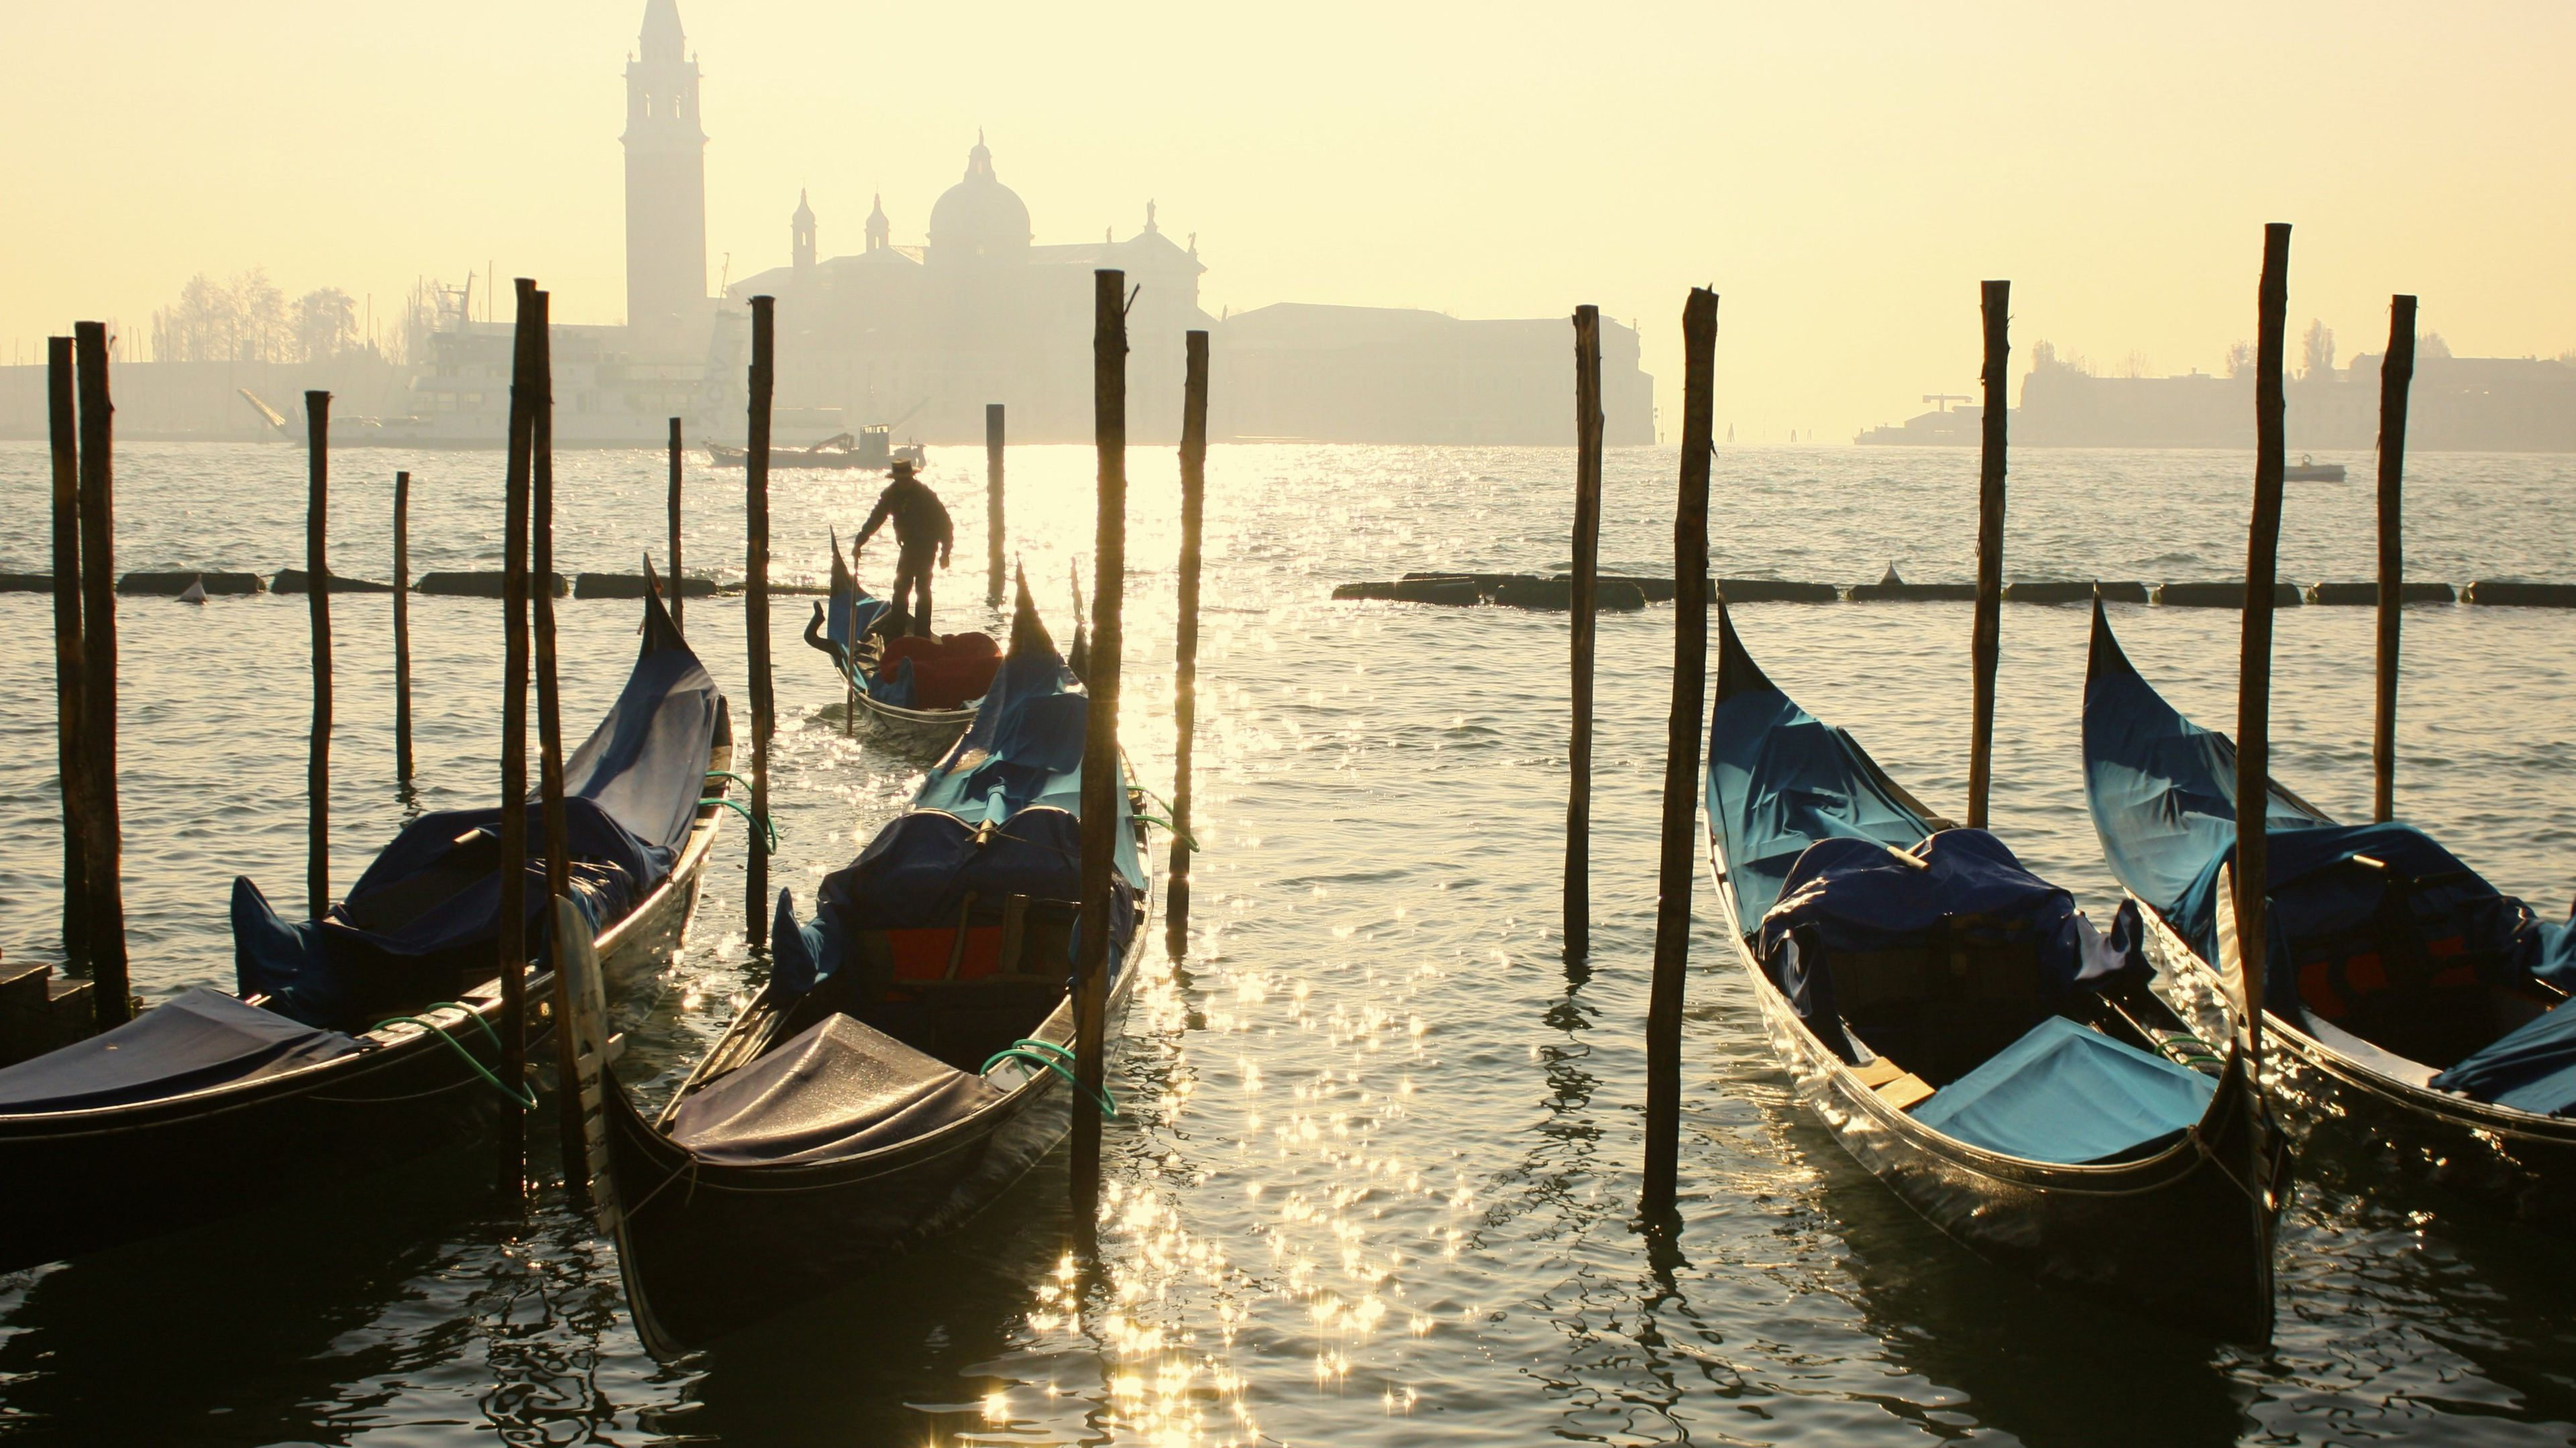 Gondolas are anchored in the waters of Venice